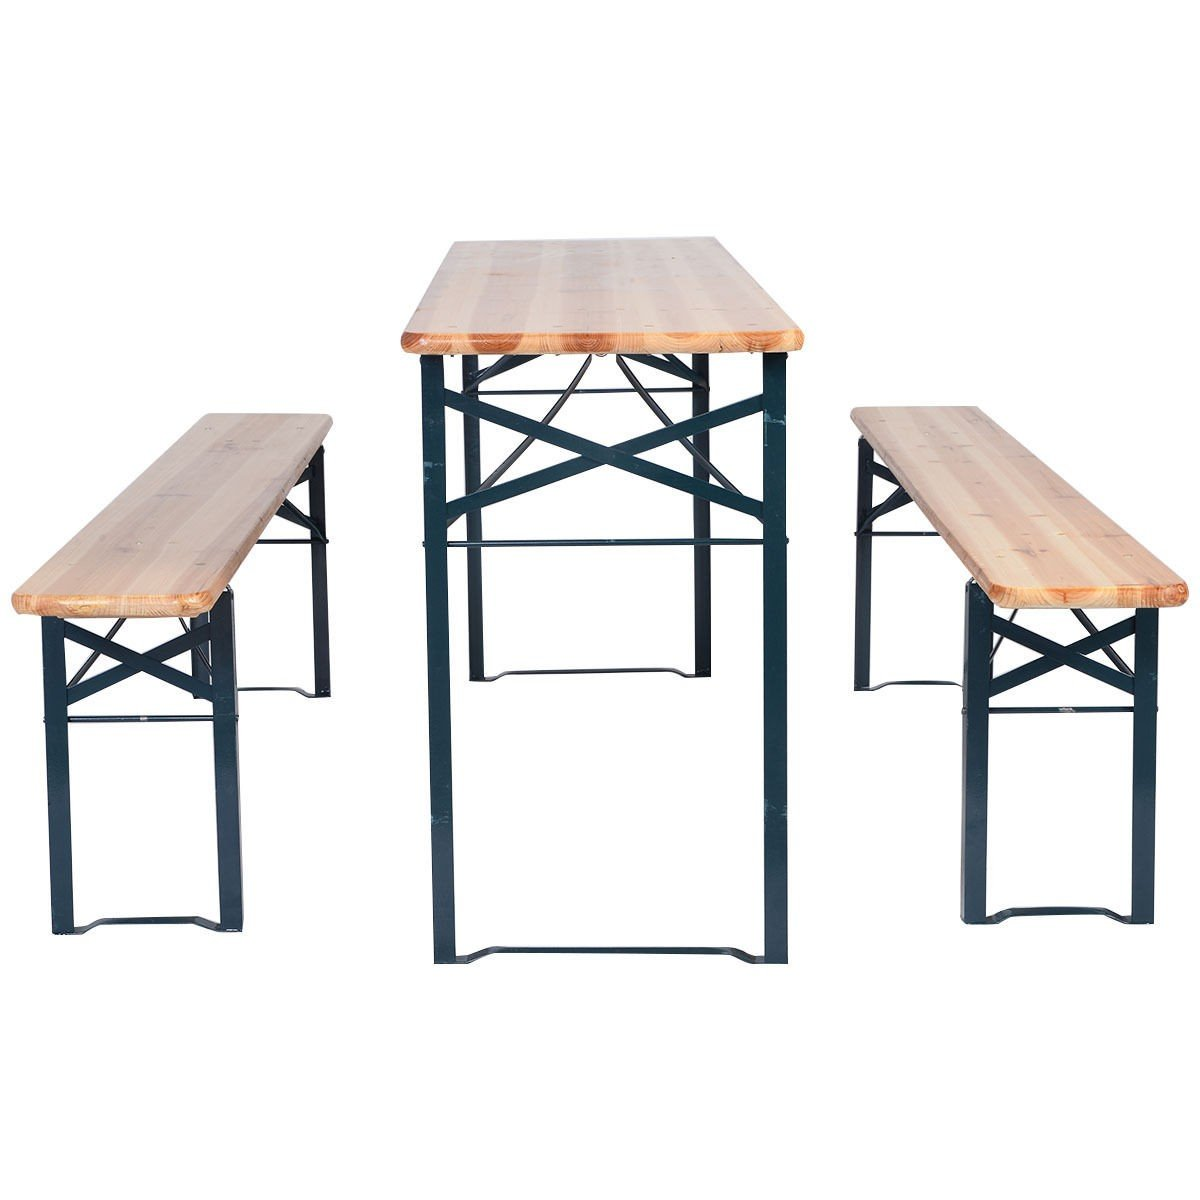 amazoncom 3 pcs beer table bench set folding wooden top picnic table patio garden kitchen u0026 dining